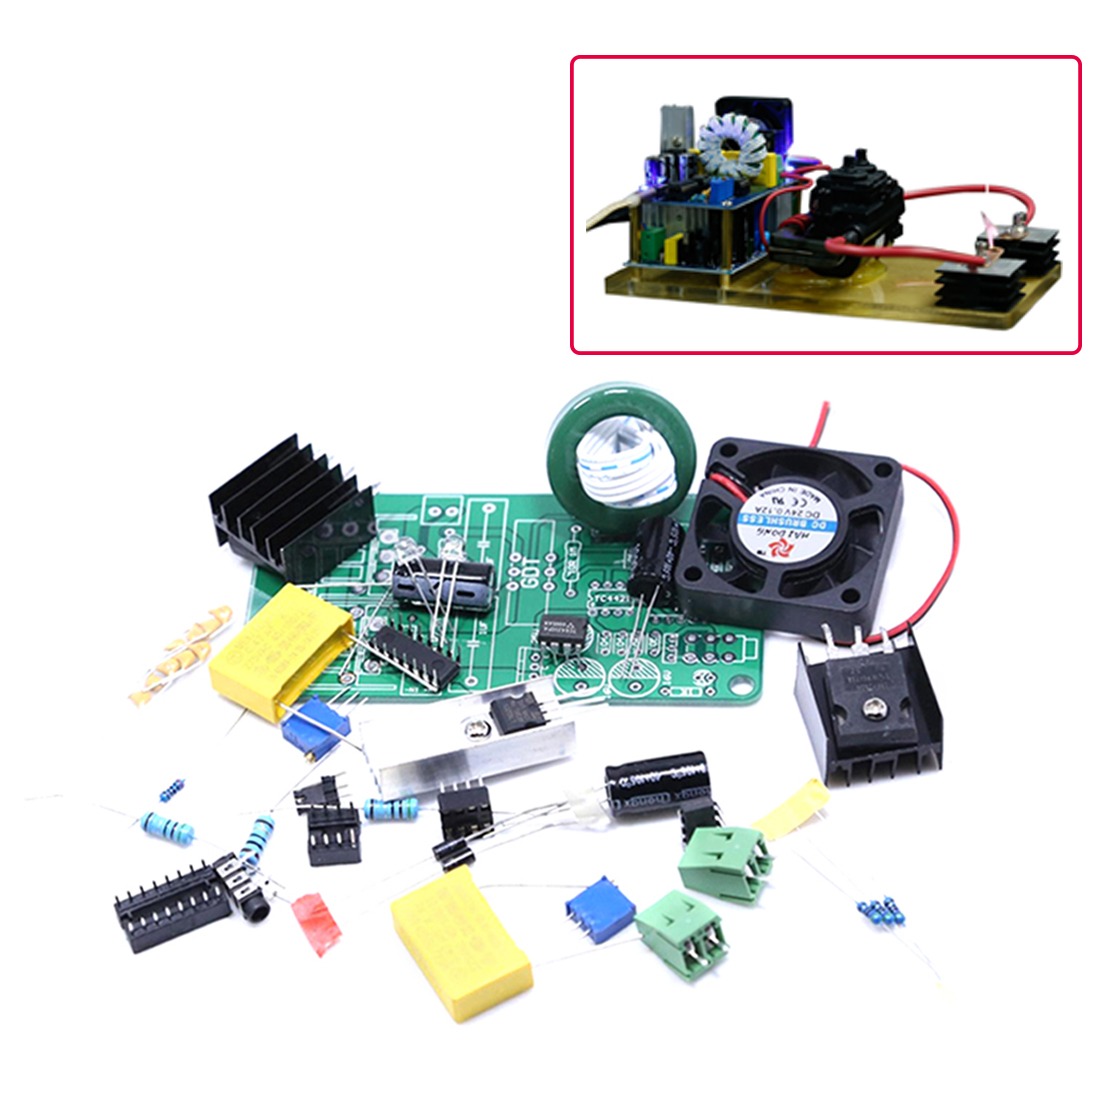 DIY Electronic Speaker Plasma Speaker Classic Tl494 Plasma Sound For Kids Education Toys - A Full Set Of Parts/Finished Product